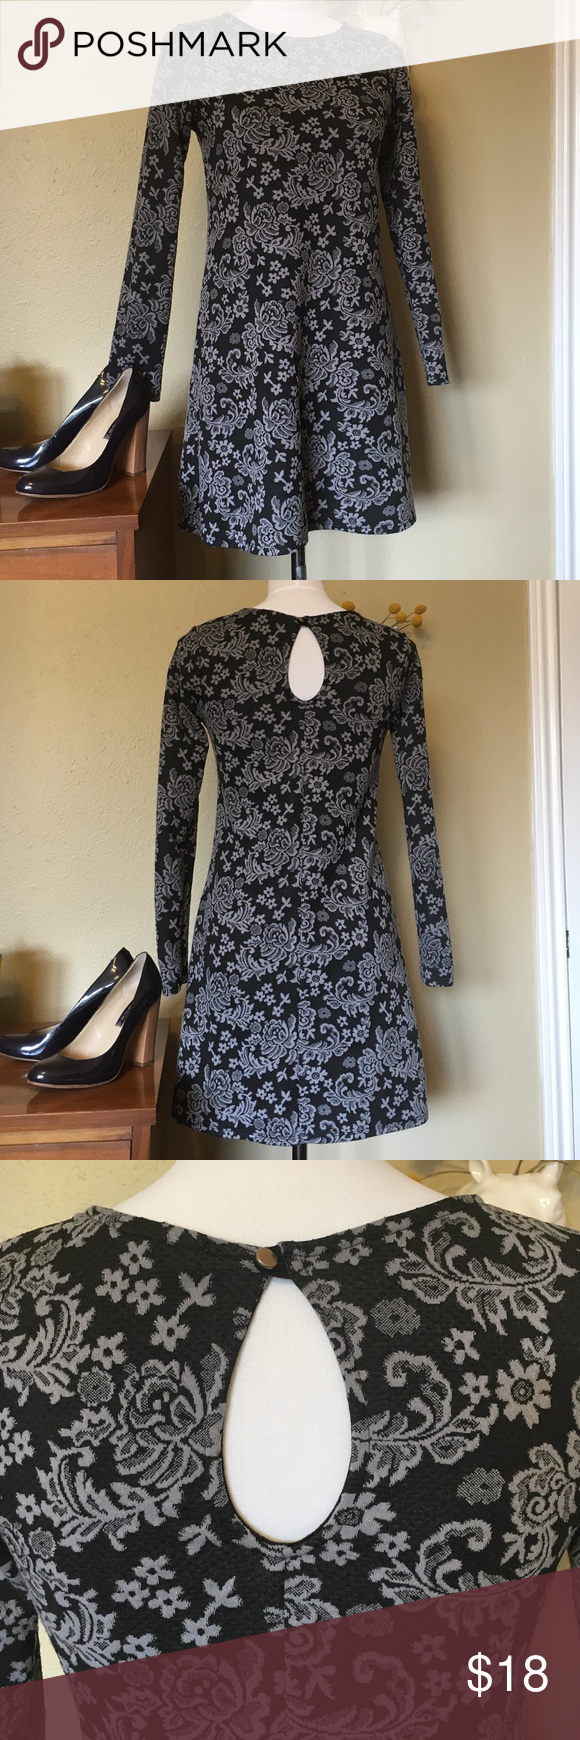 Short long sleeved mod dress with floral pattern I love this dress! It's actually great in the winter with some stockings and tall boots! A little on the short side  Offers welcome! one clothing Dresses Mini